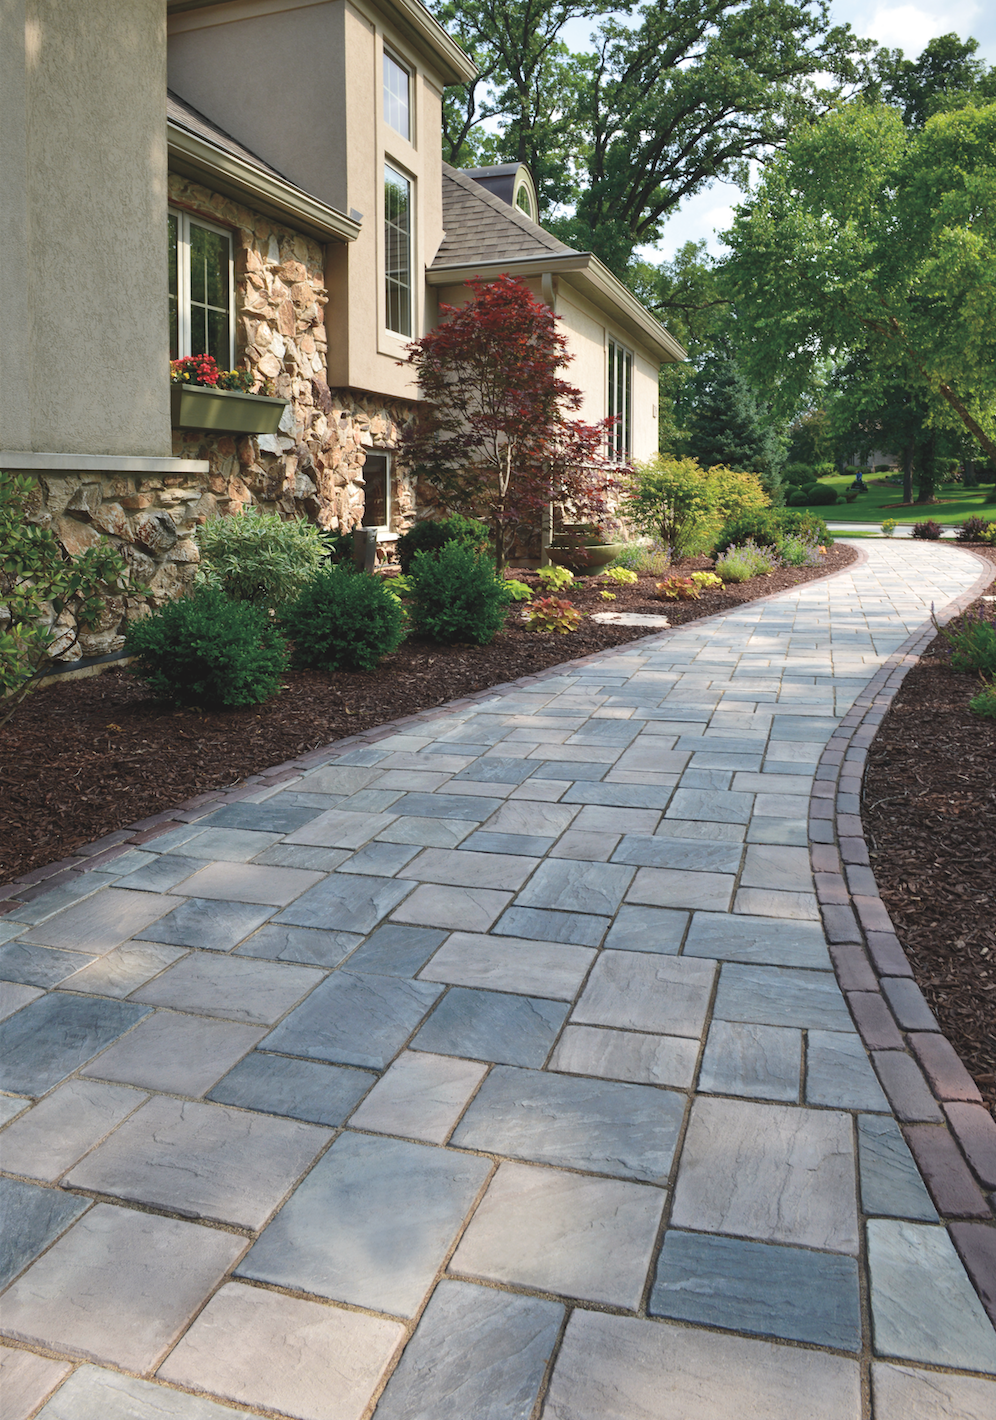 Best landscape supply company in Lakewood, NJ